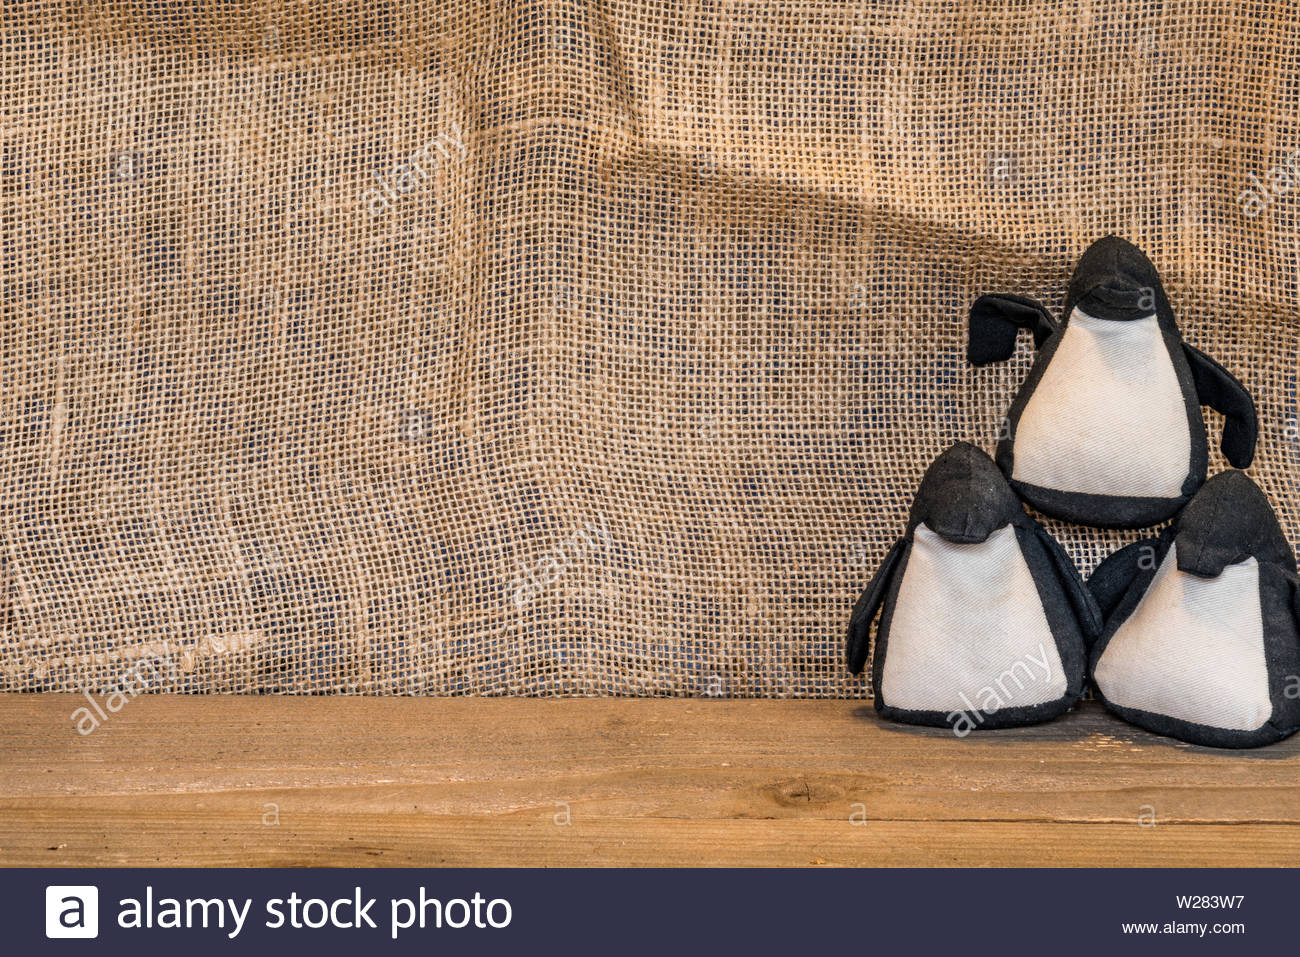 Stacked juggling penguins on a canvas backdrop - Stock Image